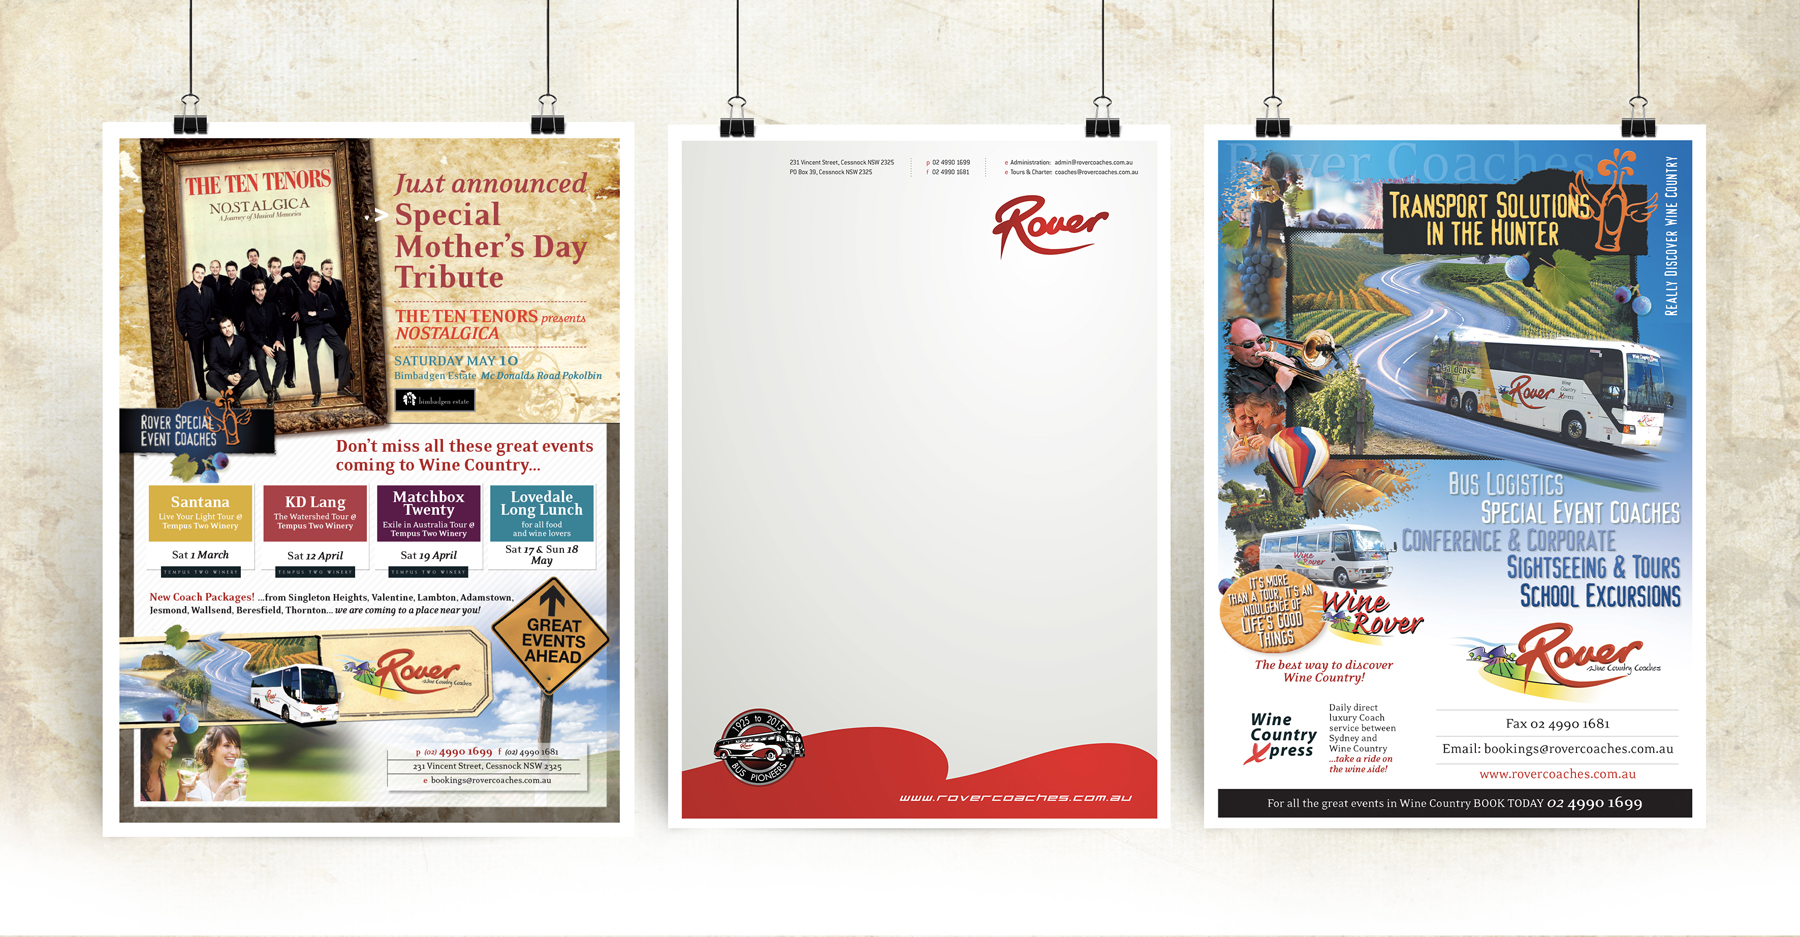 Rover Coaches Poster and Letterhead Samples